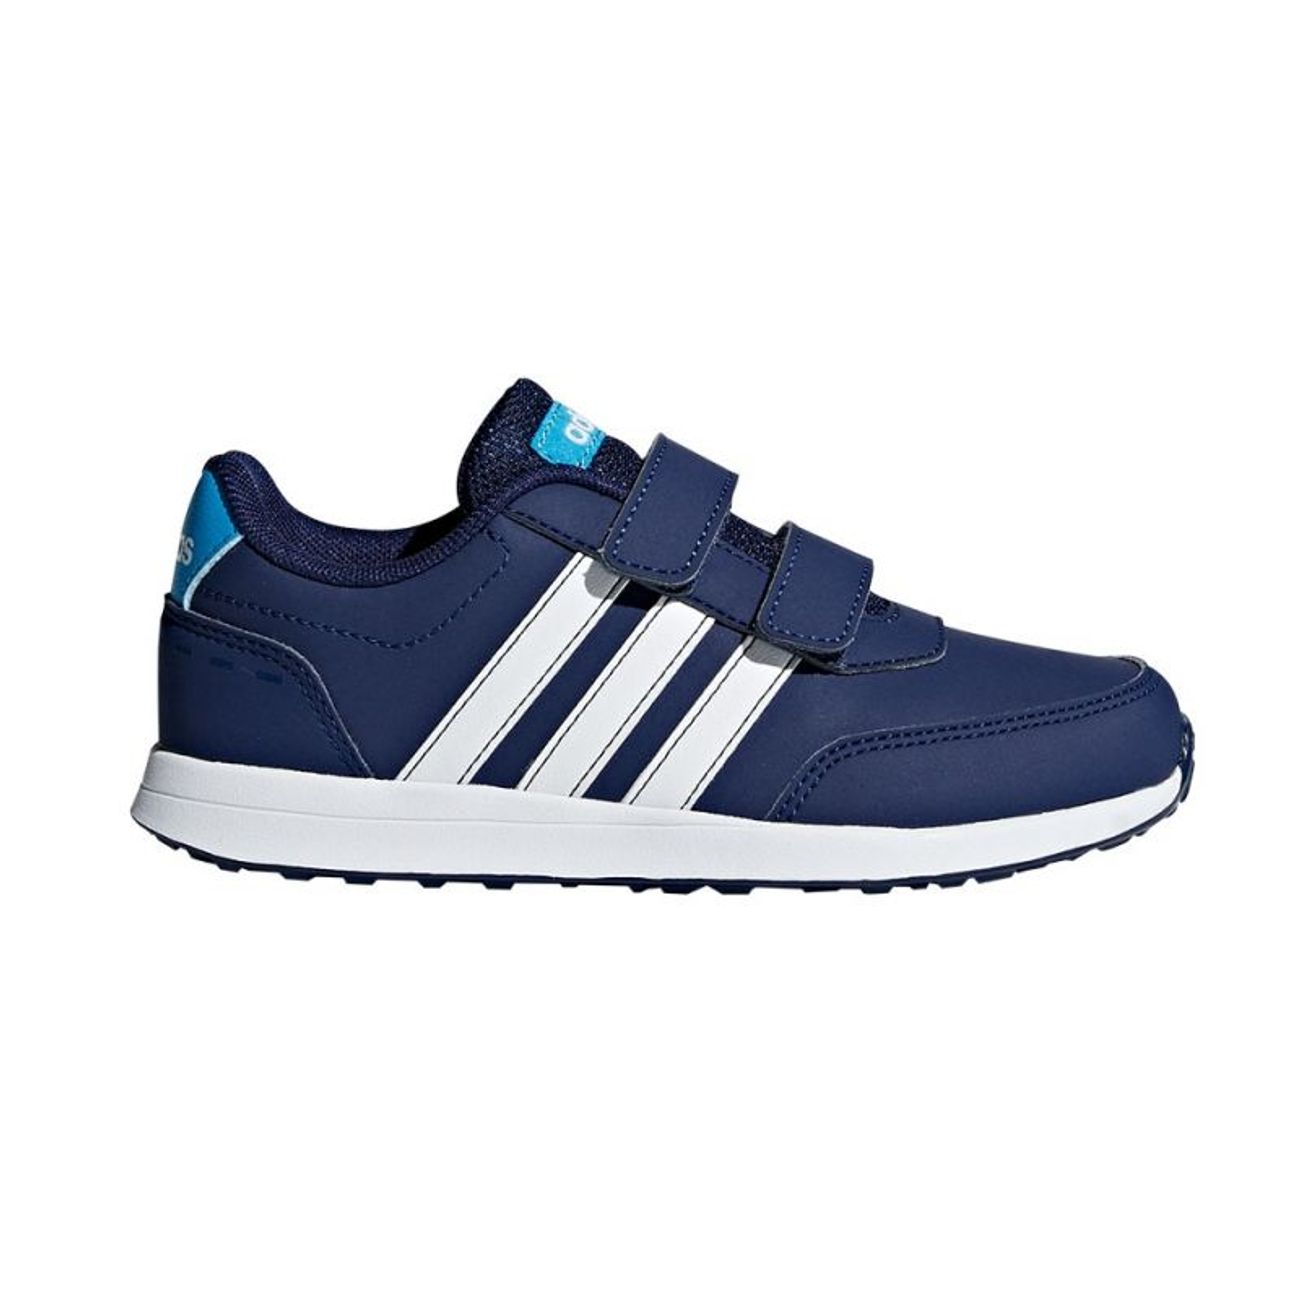 Switch Junior Adidas Bleu Marine Vs Padel Adulte F35696 2 Cmf kPXZiu